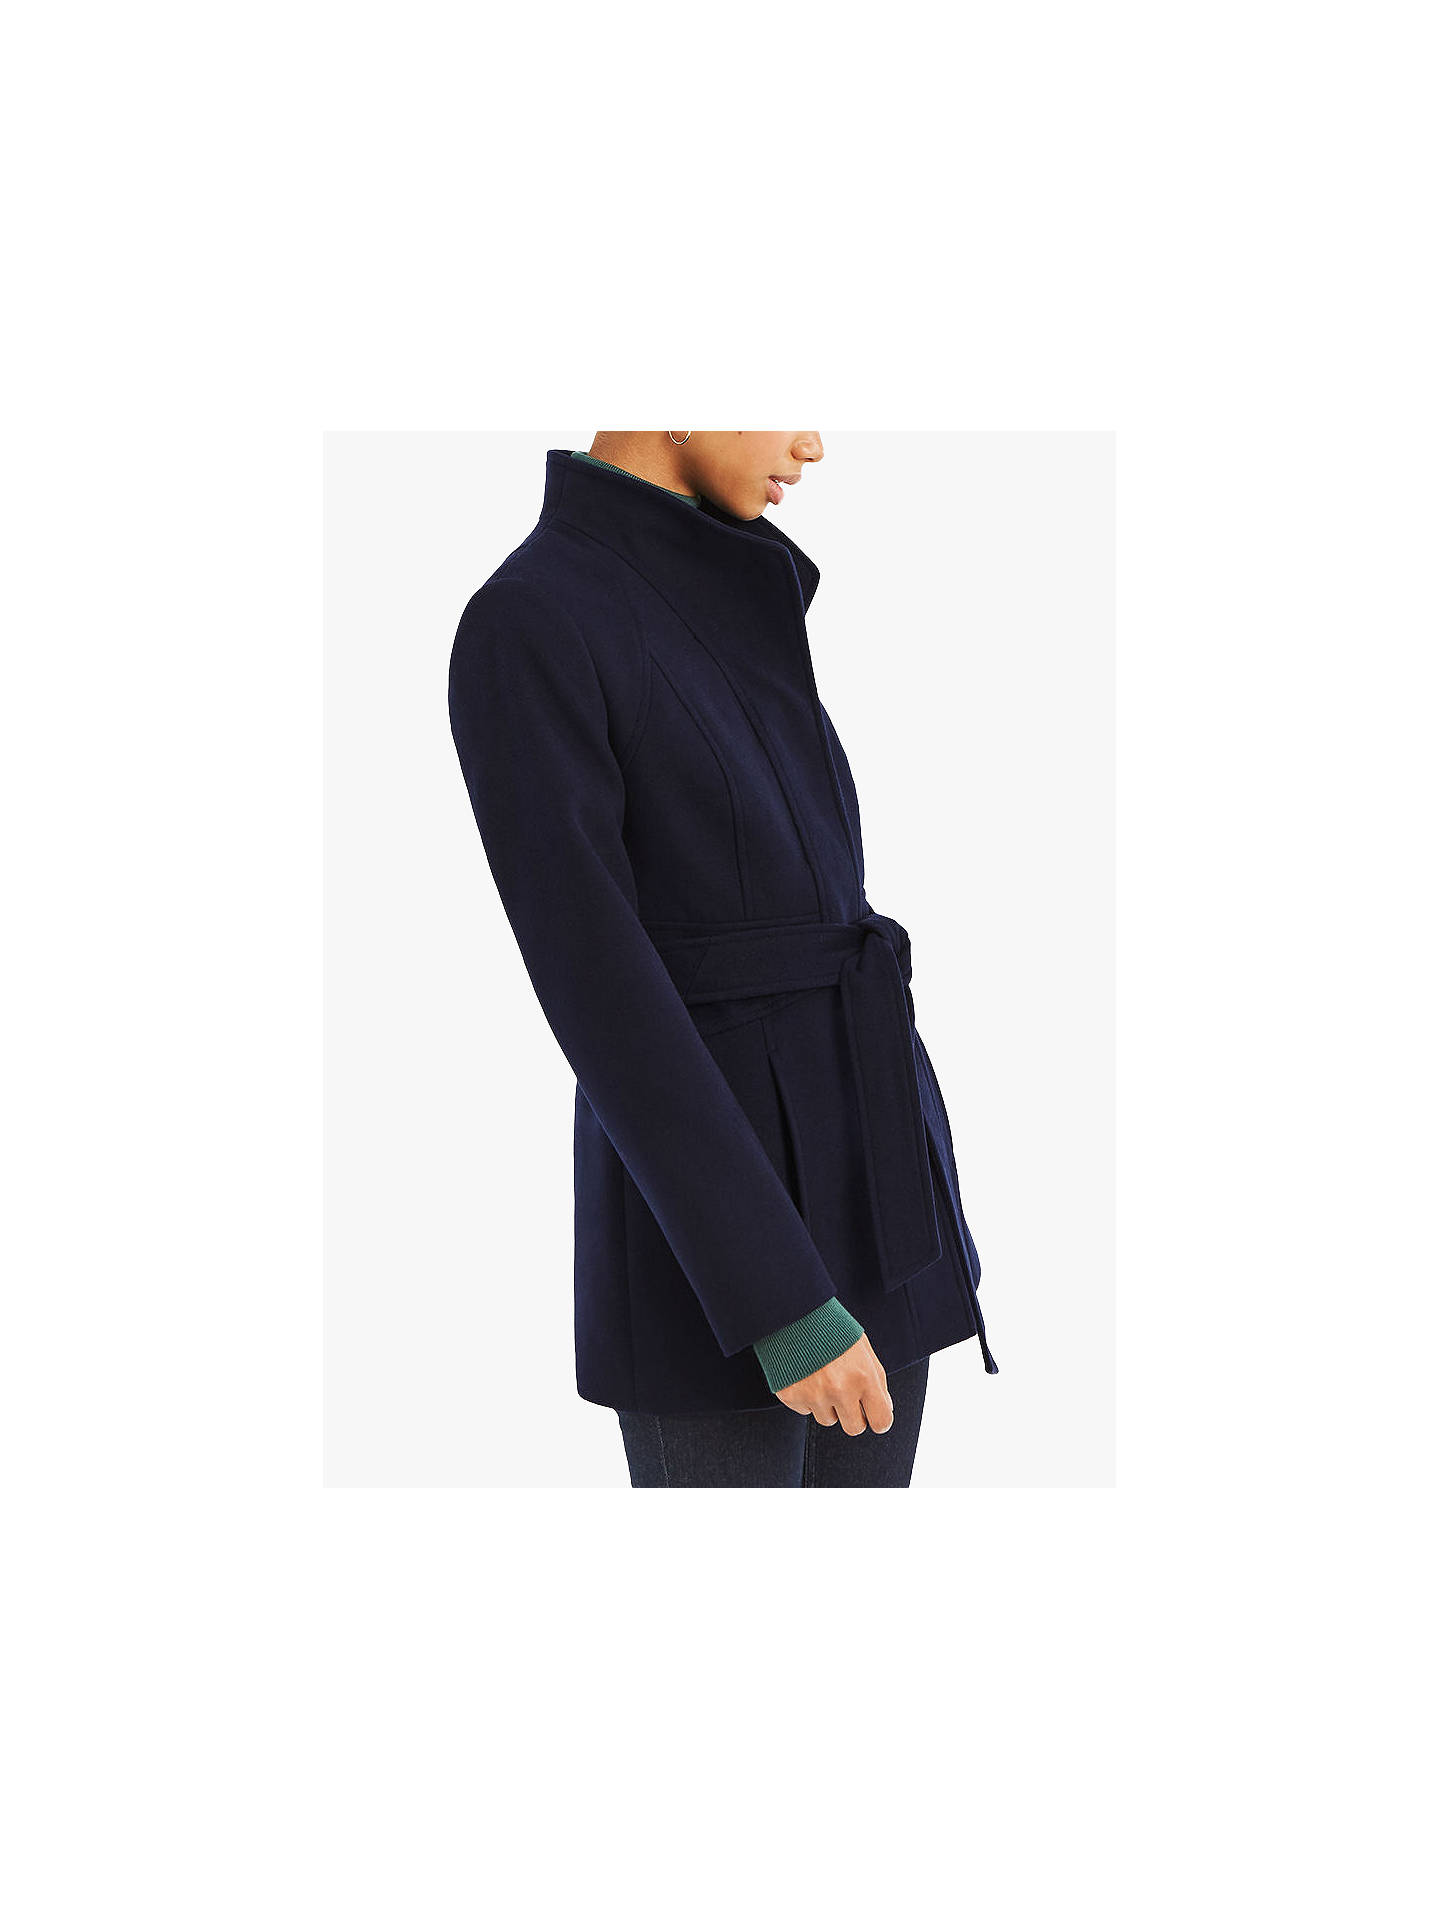 02a8727adad4 Buy Oasis Panel Fitted Coat, Navy, S Online at johnlewis.com ...